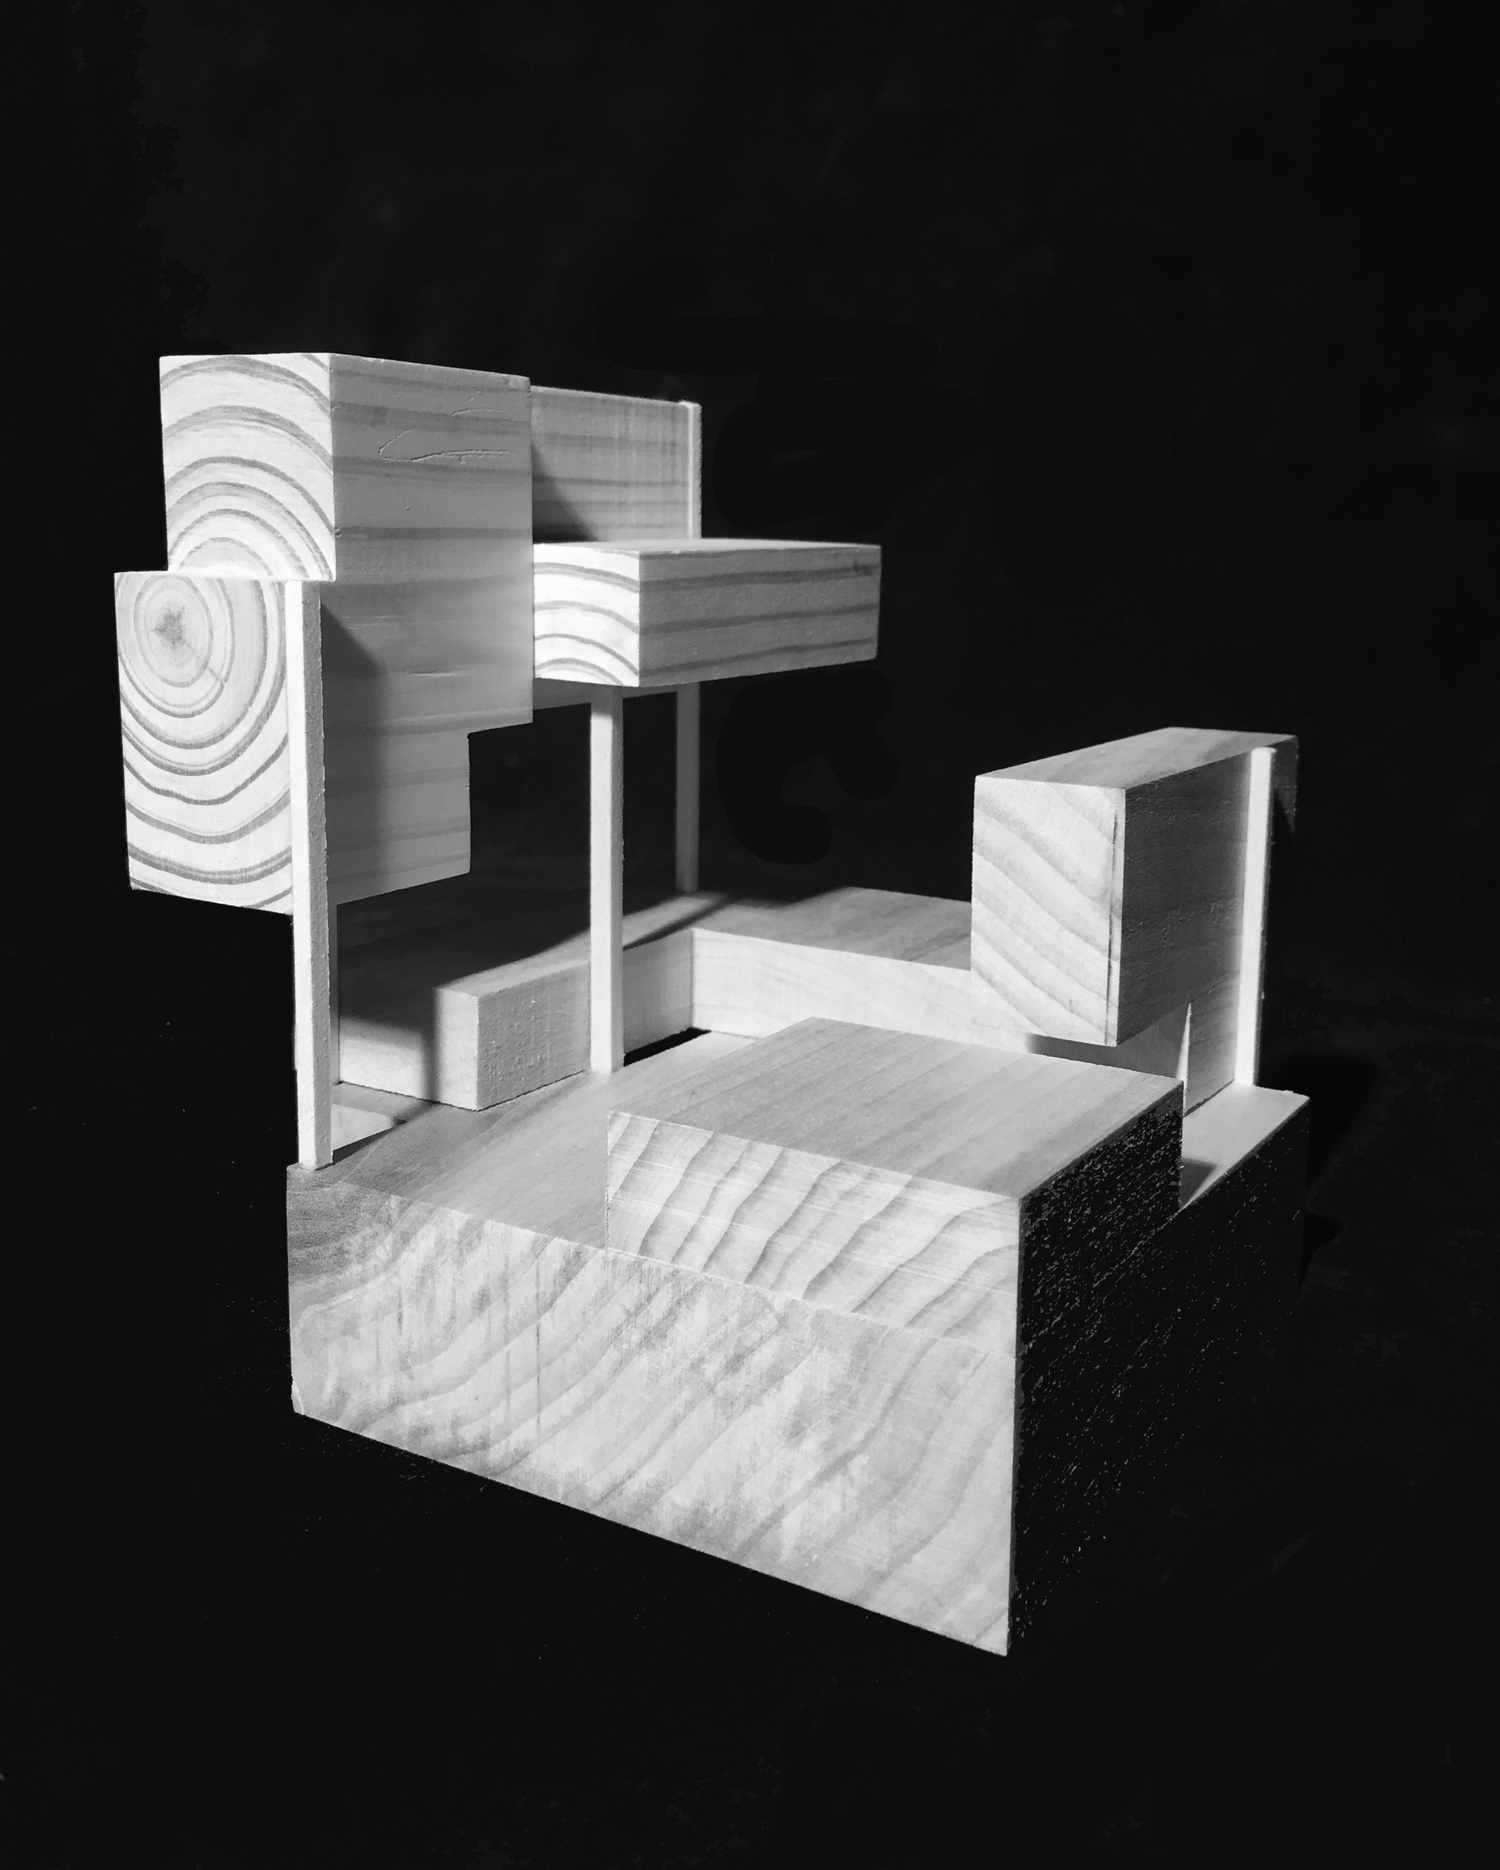 Relating tectonic pieces to stereotomic mass.  Wood. 02/02